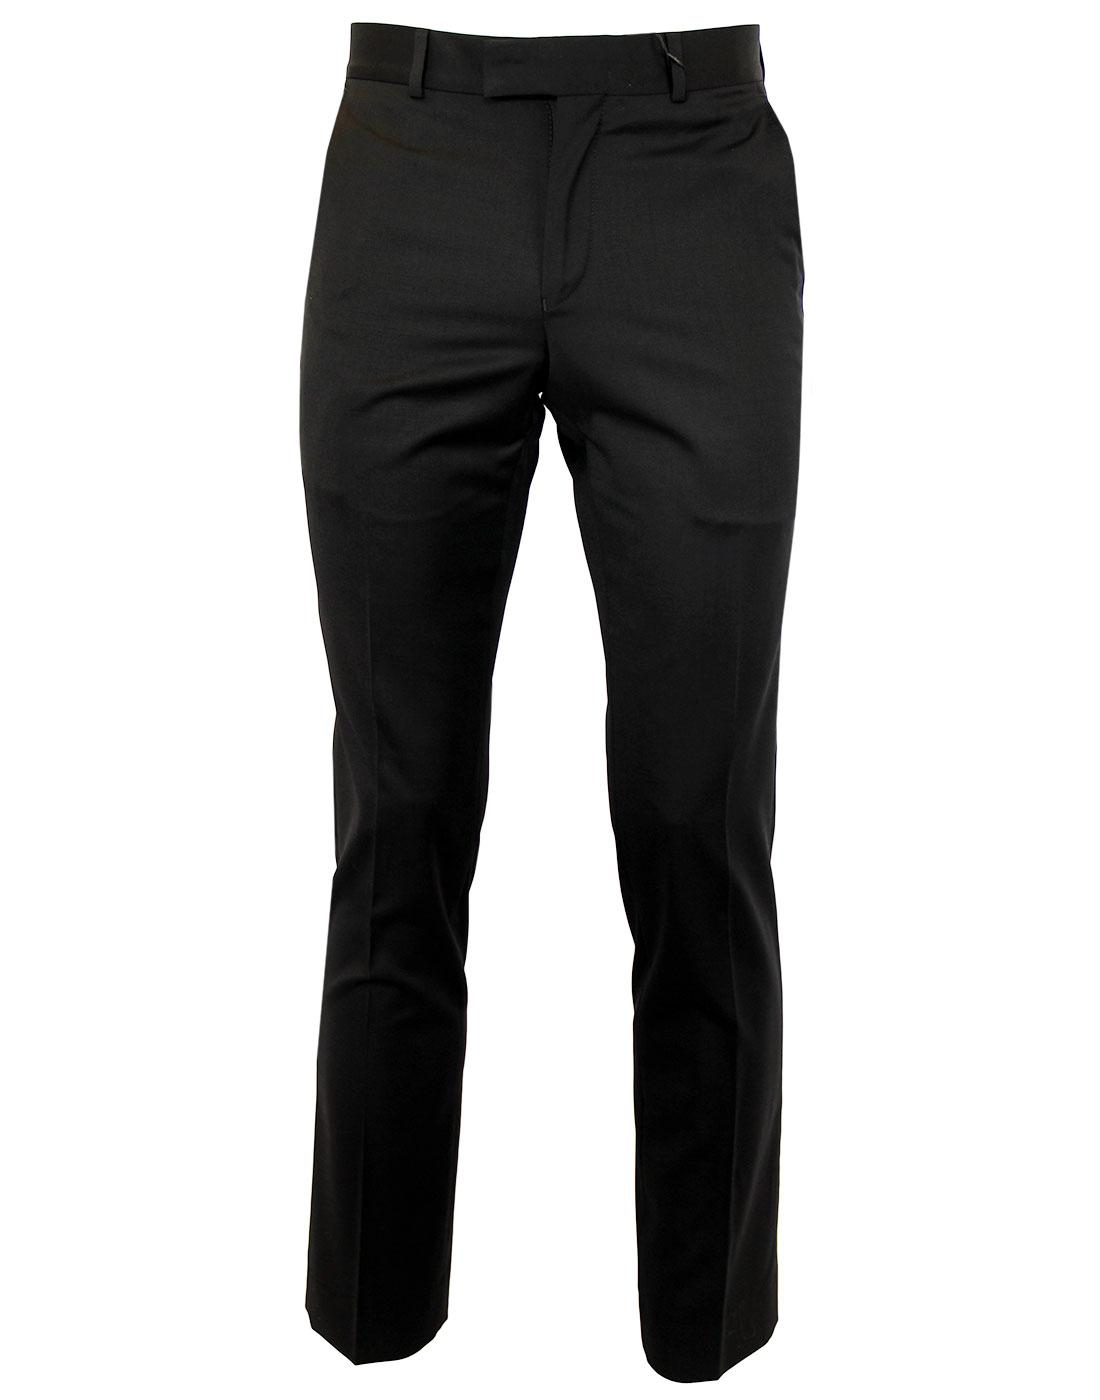 BEN SHERMAN Tailoring Mod Slim Black Trousers